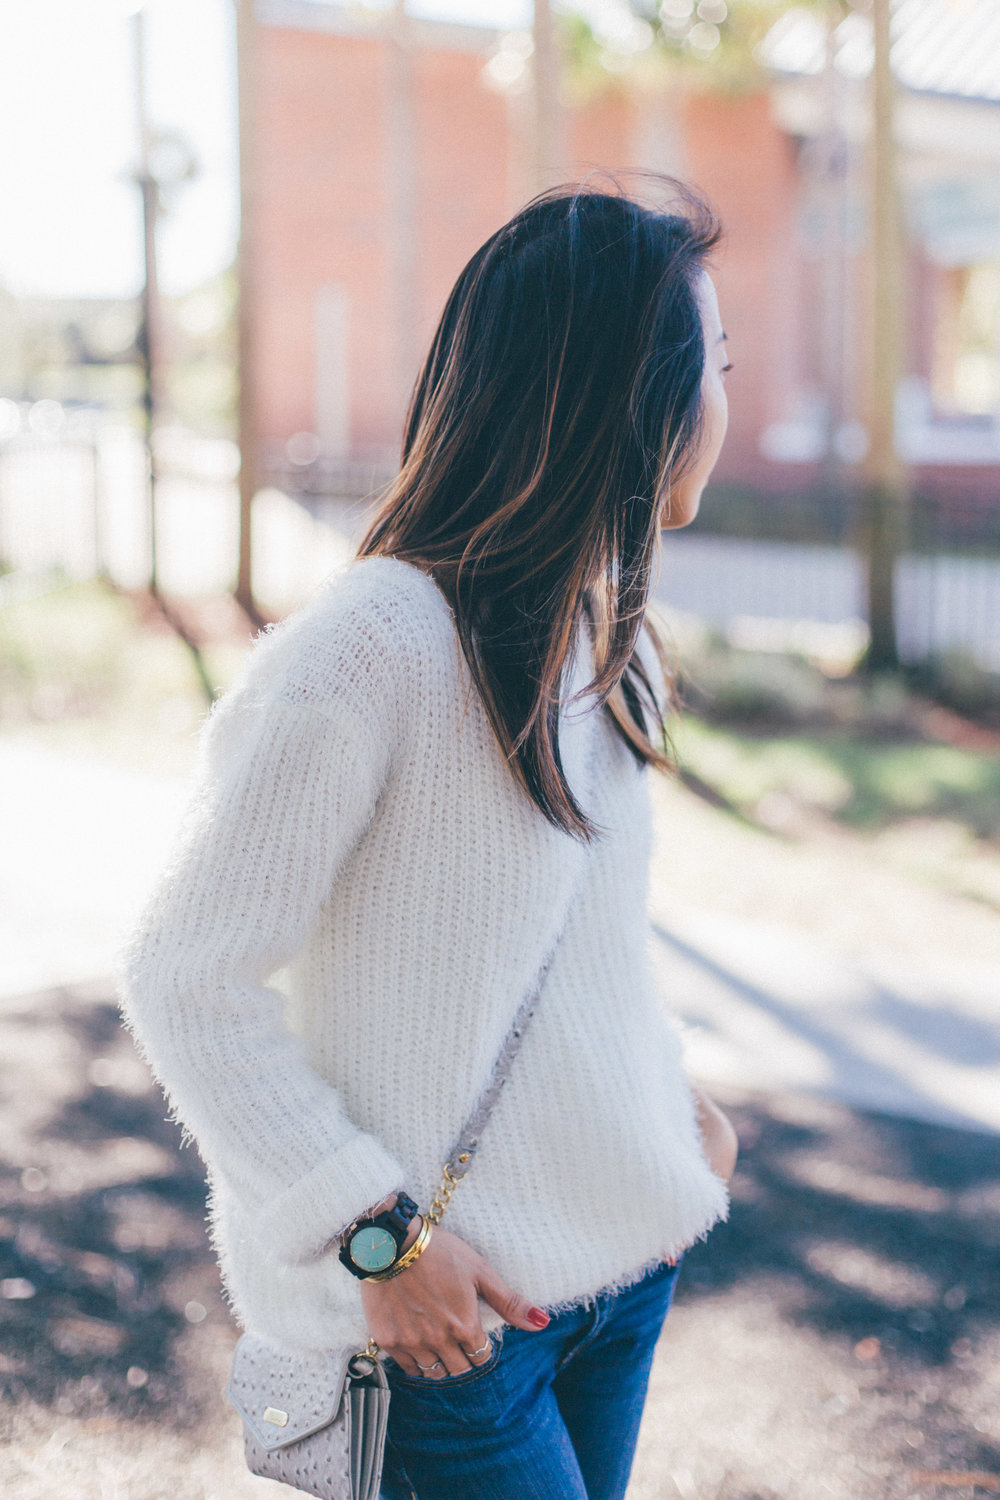 This Jenn Girl - Fuzzy White Sweater 3